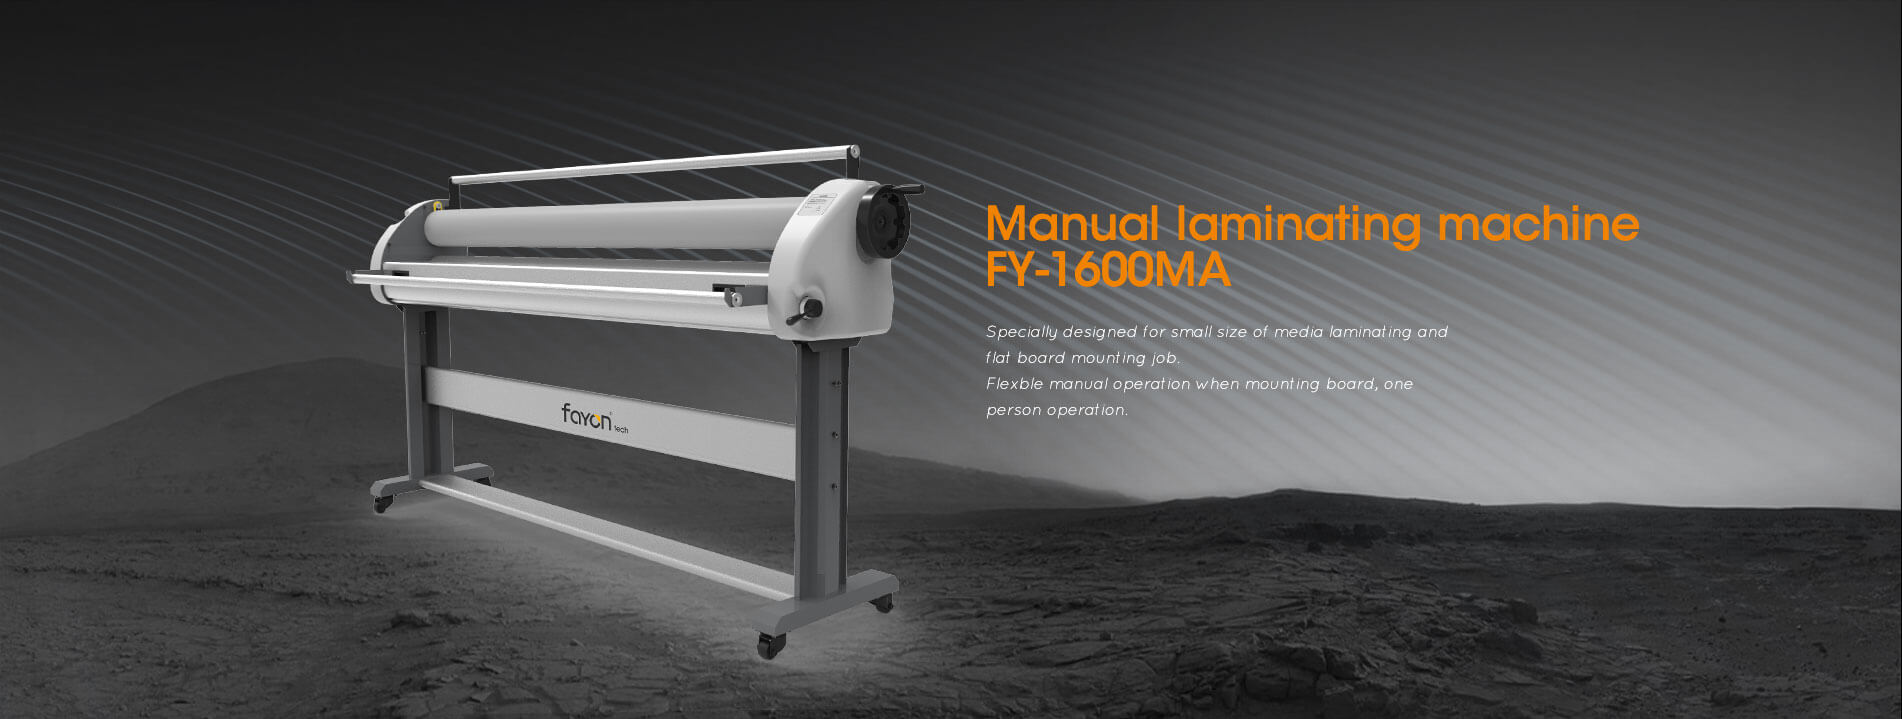 Manual laminating machine  FY-1600MA